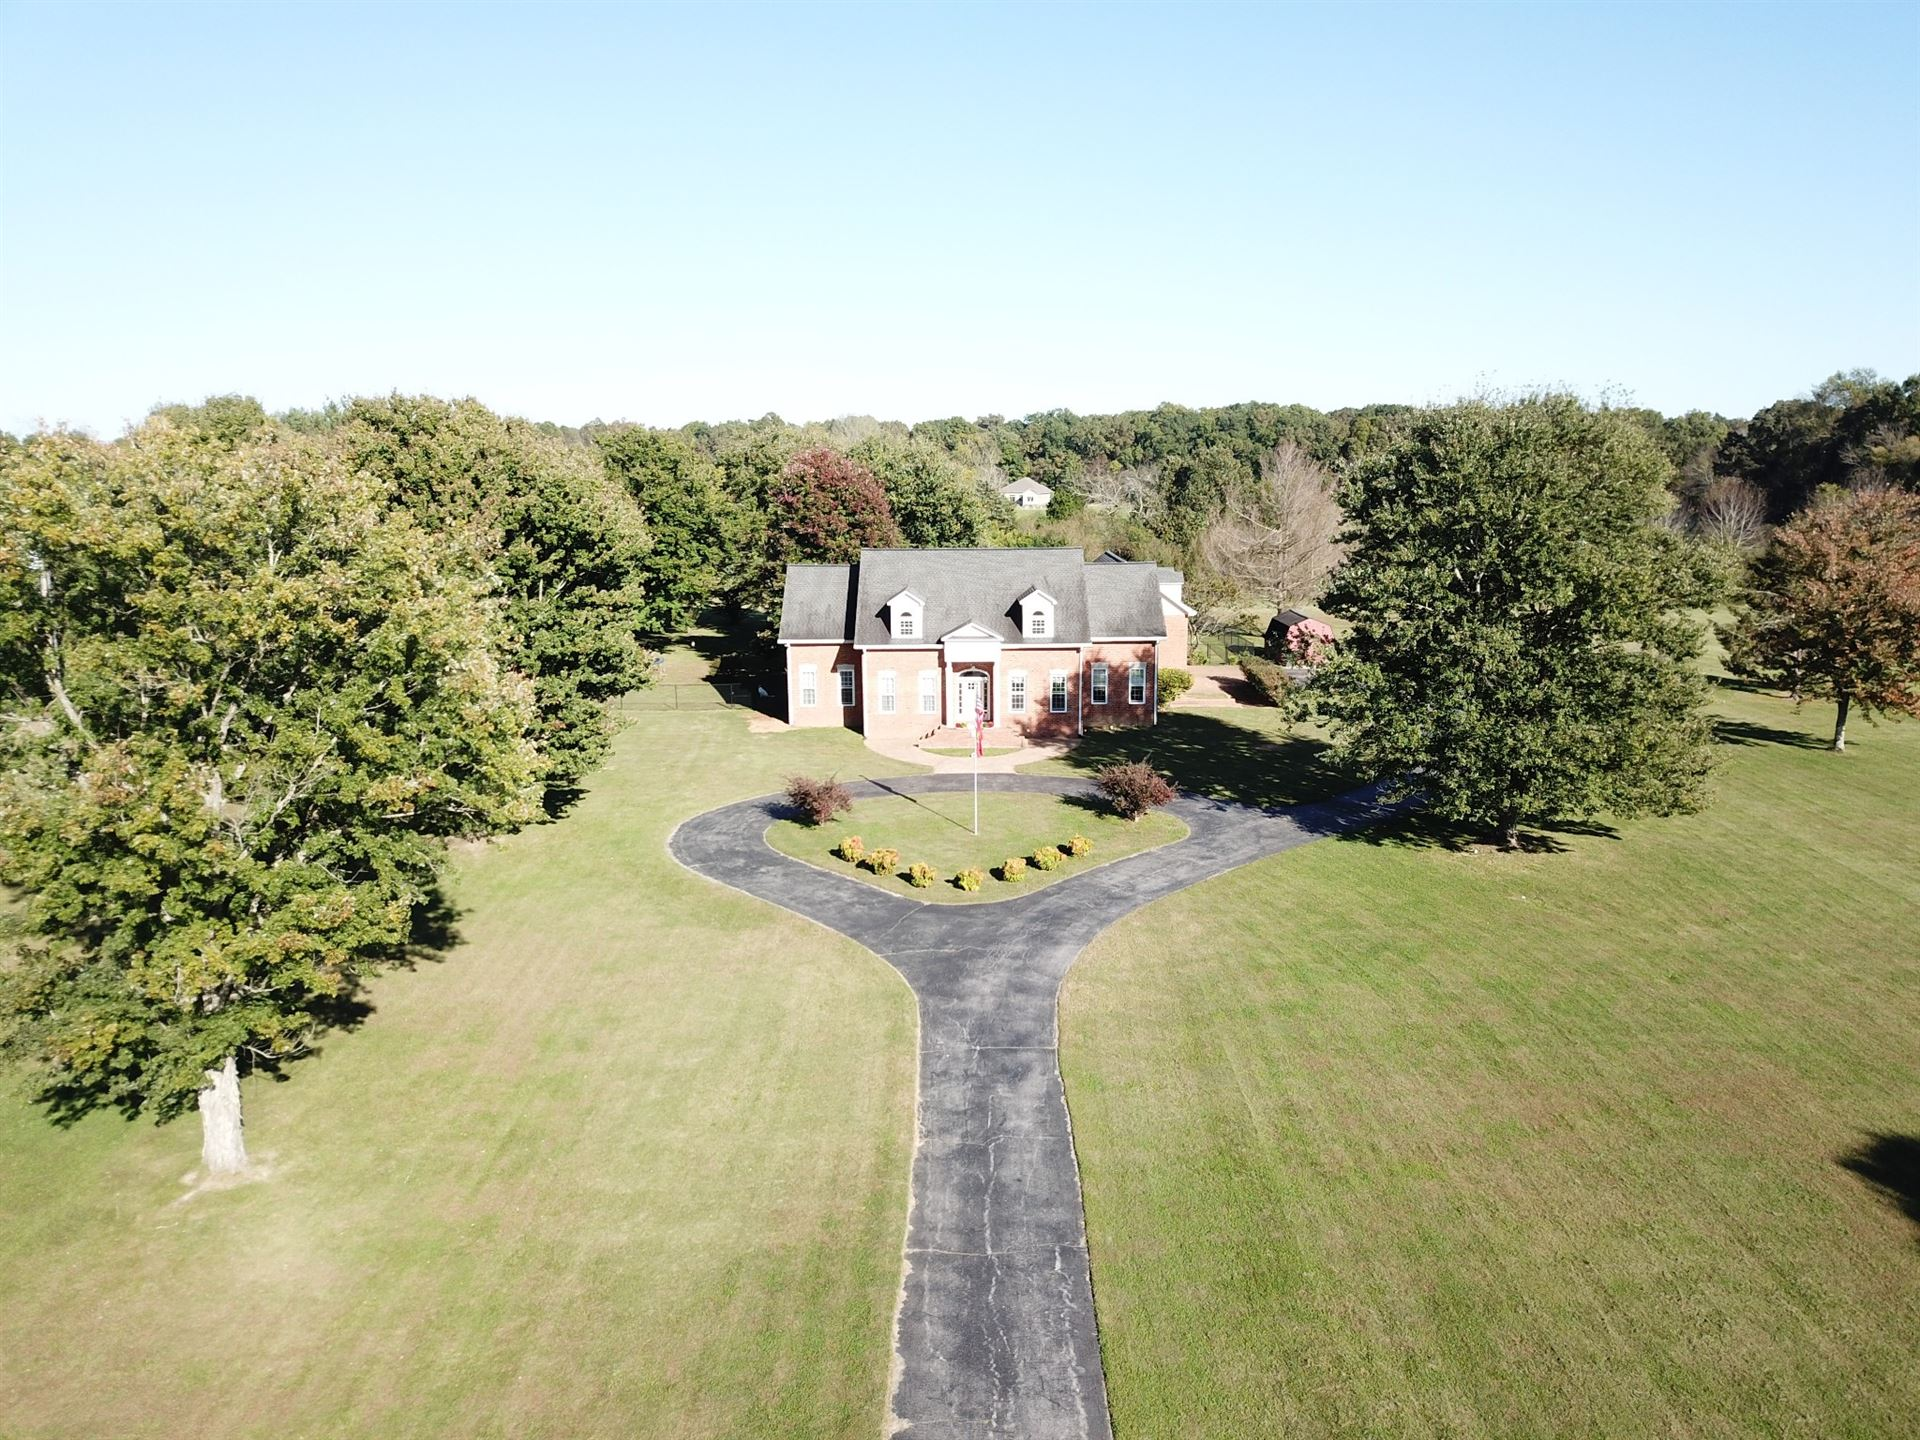 159 Country Ln, Manchester, TN 37355 - MLS#: 2301452